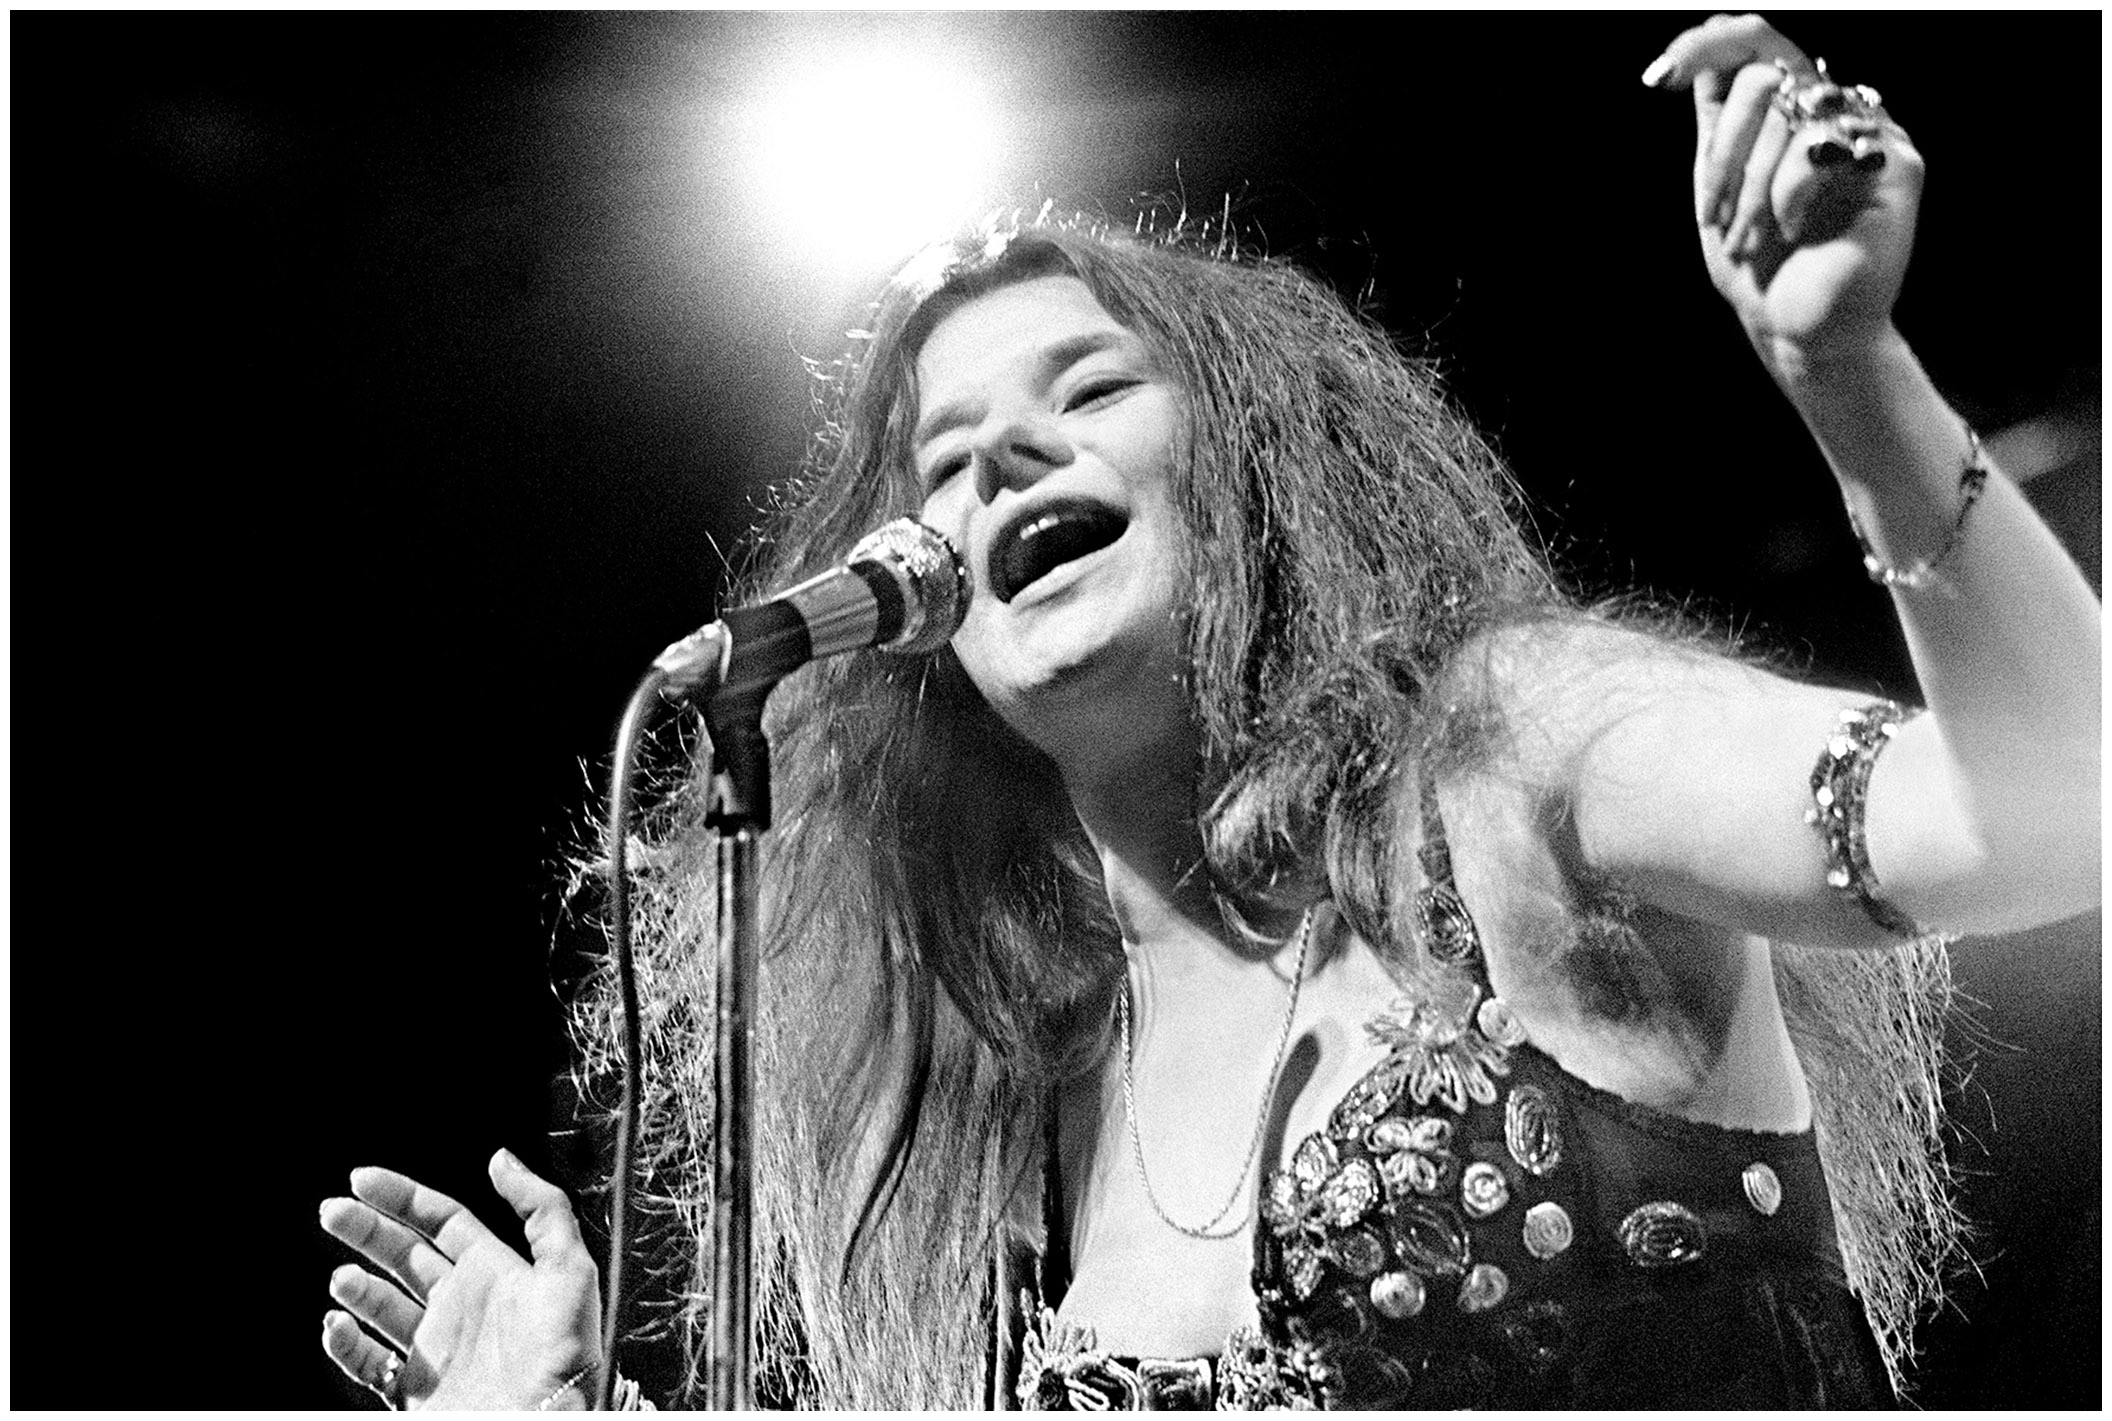 Lee-Daniels-Janis-Joplin-biopic-Get-It-While-You-Can